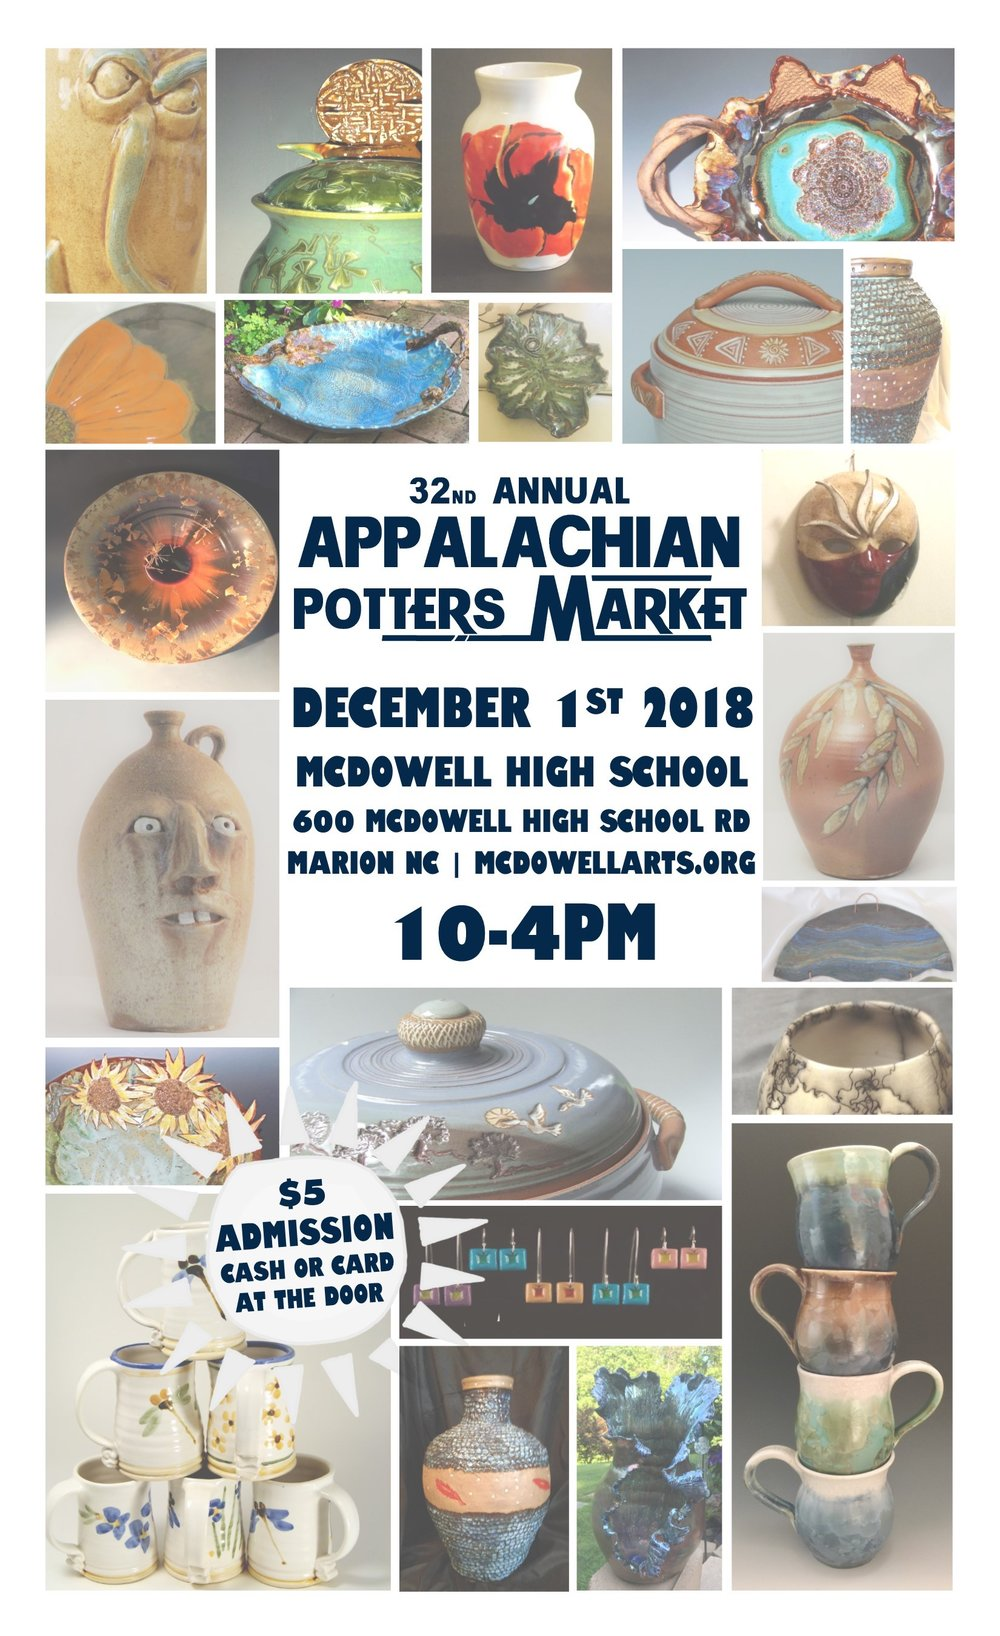 Appalachian Potters Market - Appalachian Potters MarketSaturday, December 1st10am - 4pmMcDowell High School600 McDowell High DrMarion, North Carolina 28752More info: http://www.mcdowellarts.org/appalachian-potters-market.htmland: https://www.facebook.com/events/232440440955573/